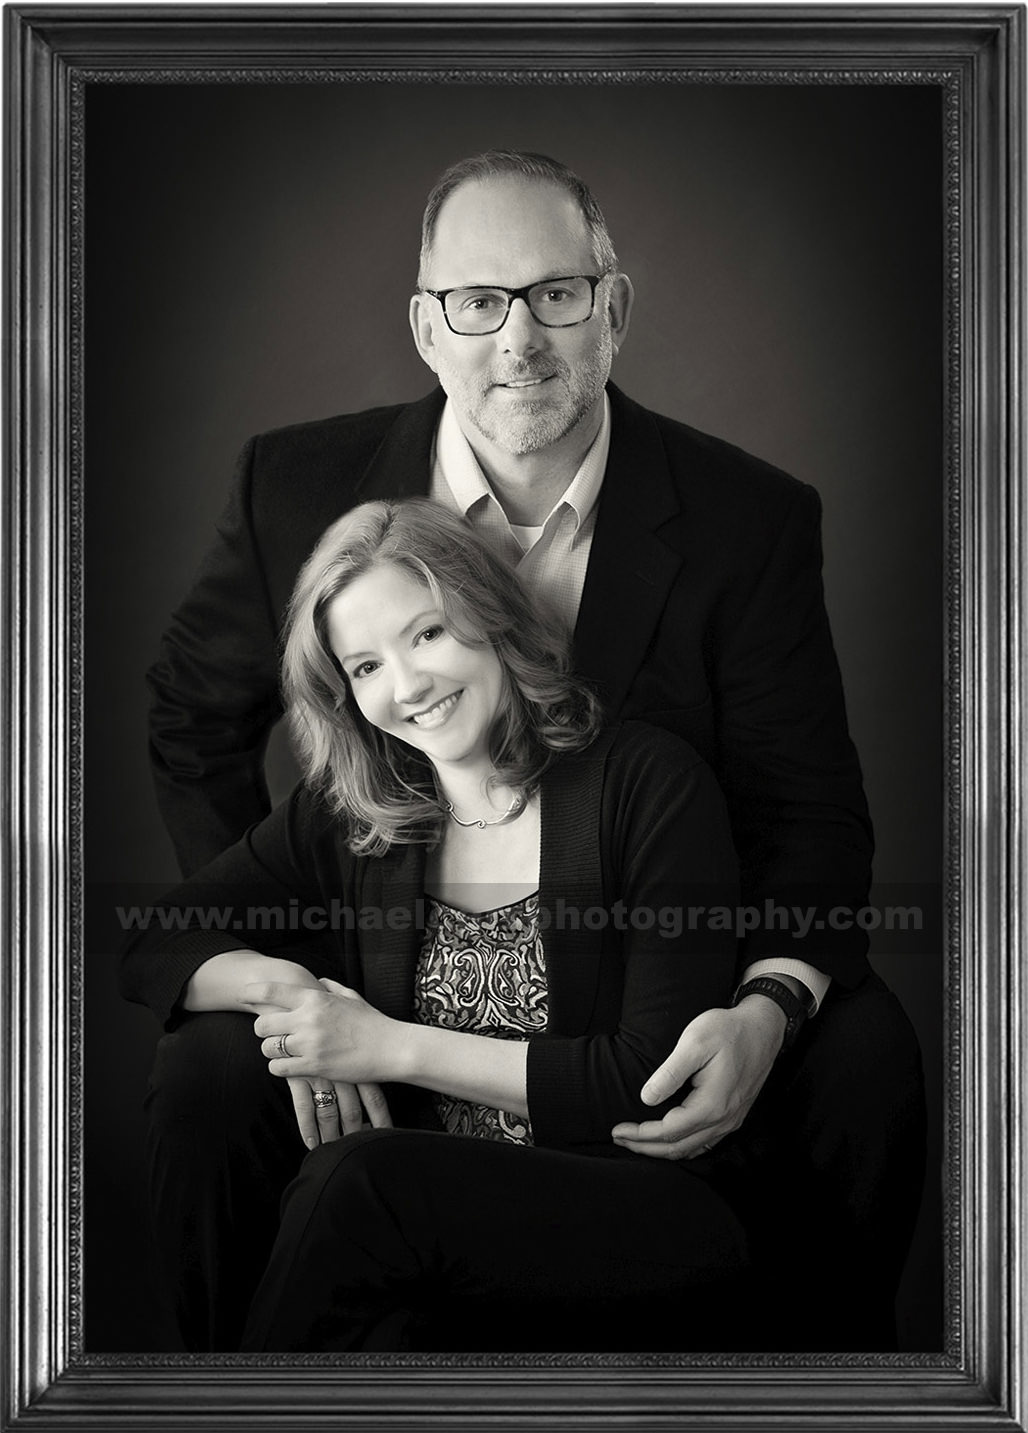 Couples and Relationship BW Portraits